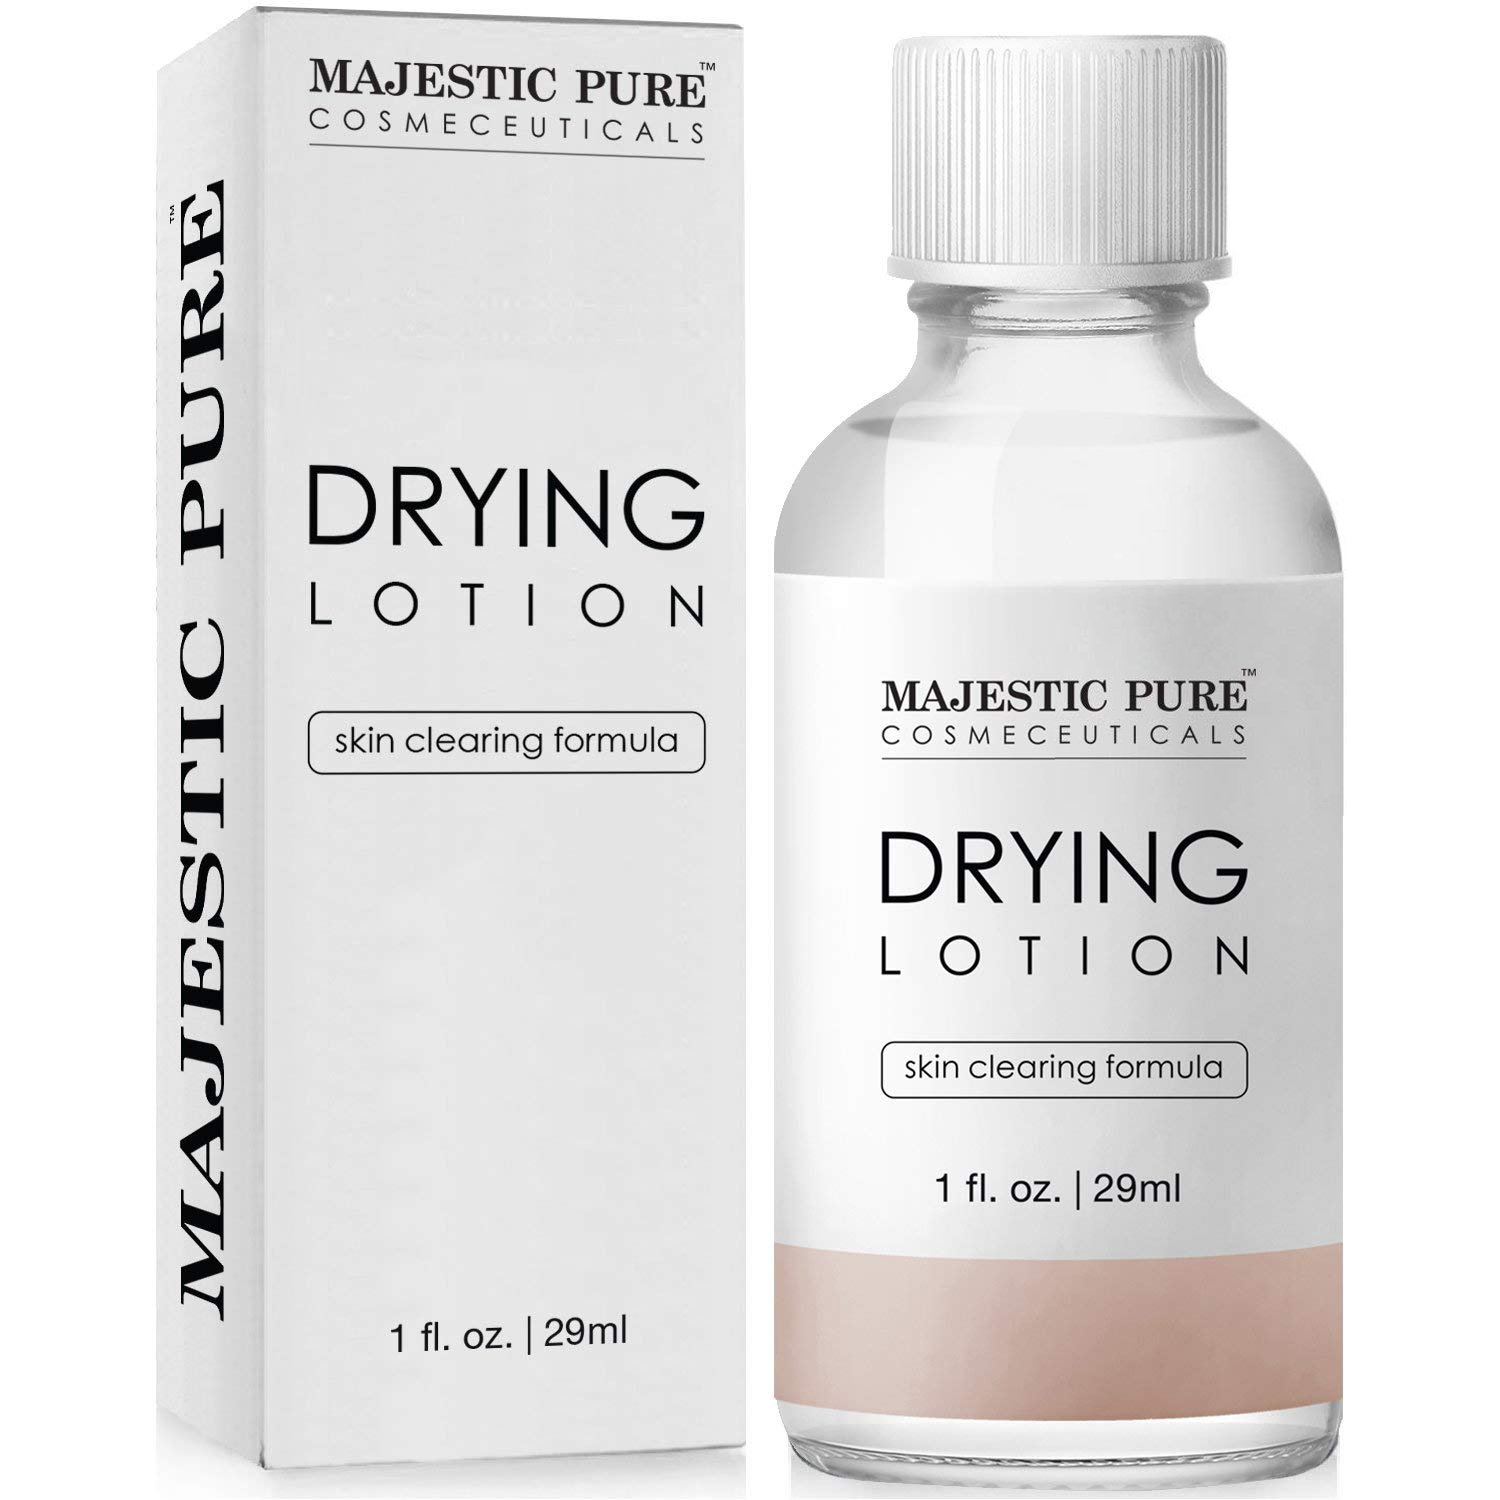 Majestic Pure Acne Drying Lotion, Acne and Pimples Skin Care Formula, 1 fl. oz. by Majestic Pure